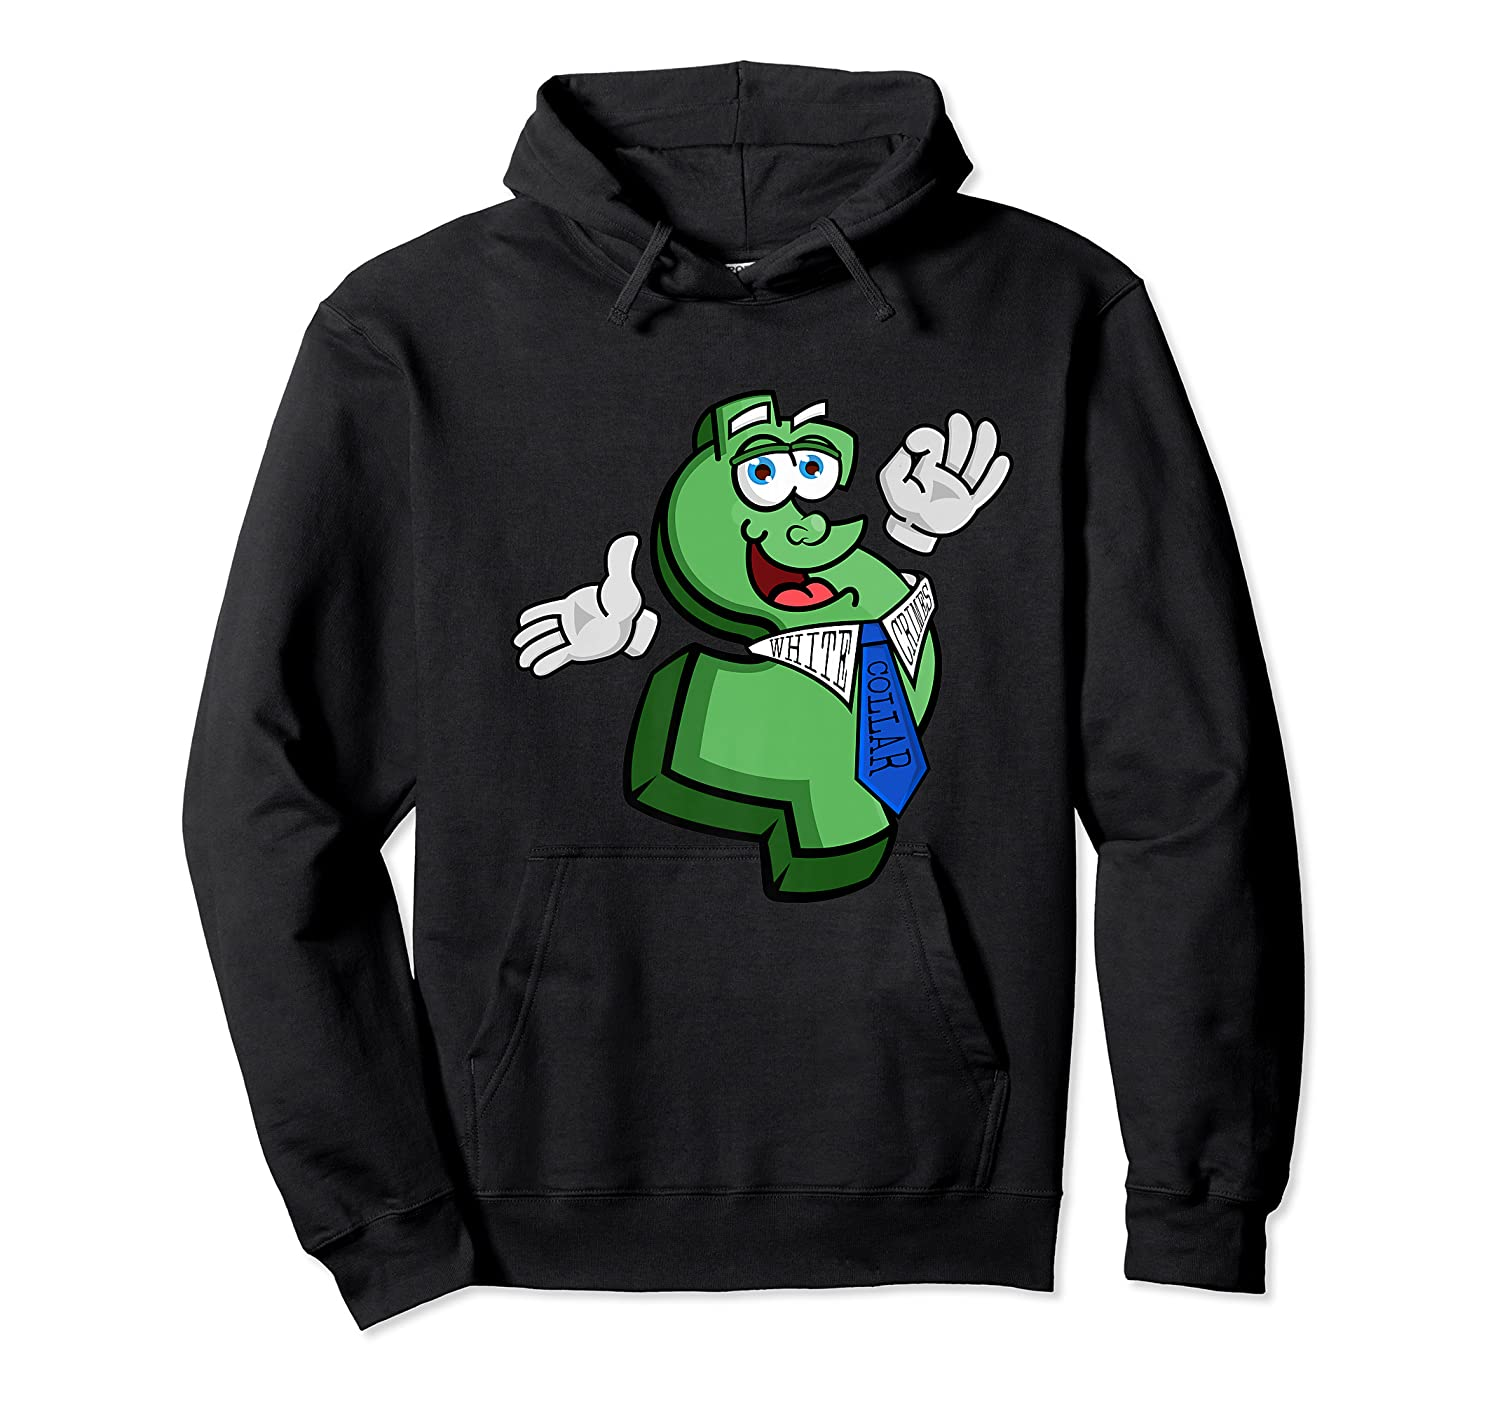 Funny T Shirts For Funny T Shirts For  Unisex Pullover Hoodie